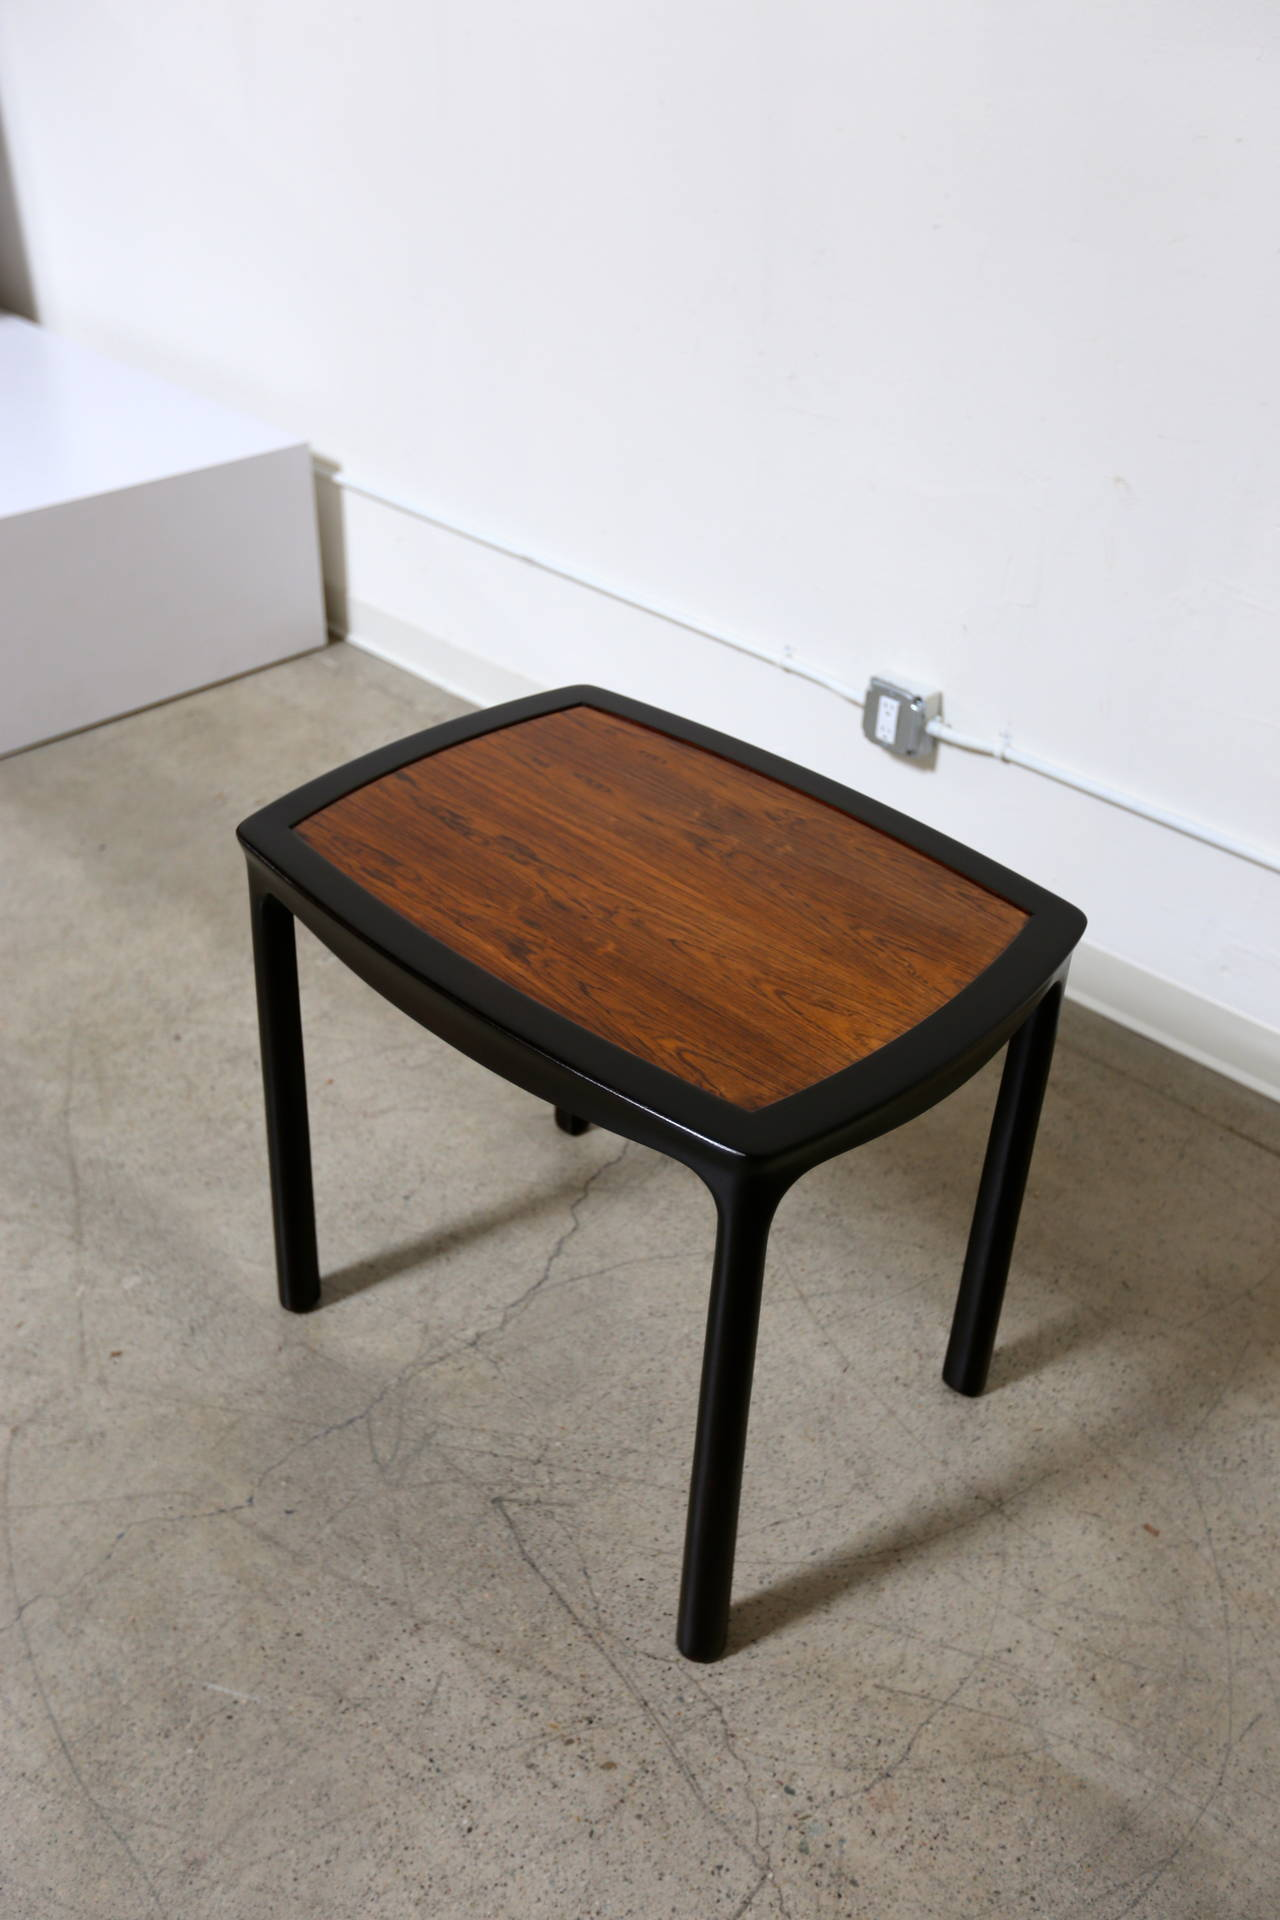 Rosewood Side Table by Edward Wormley for Dunbar.